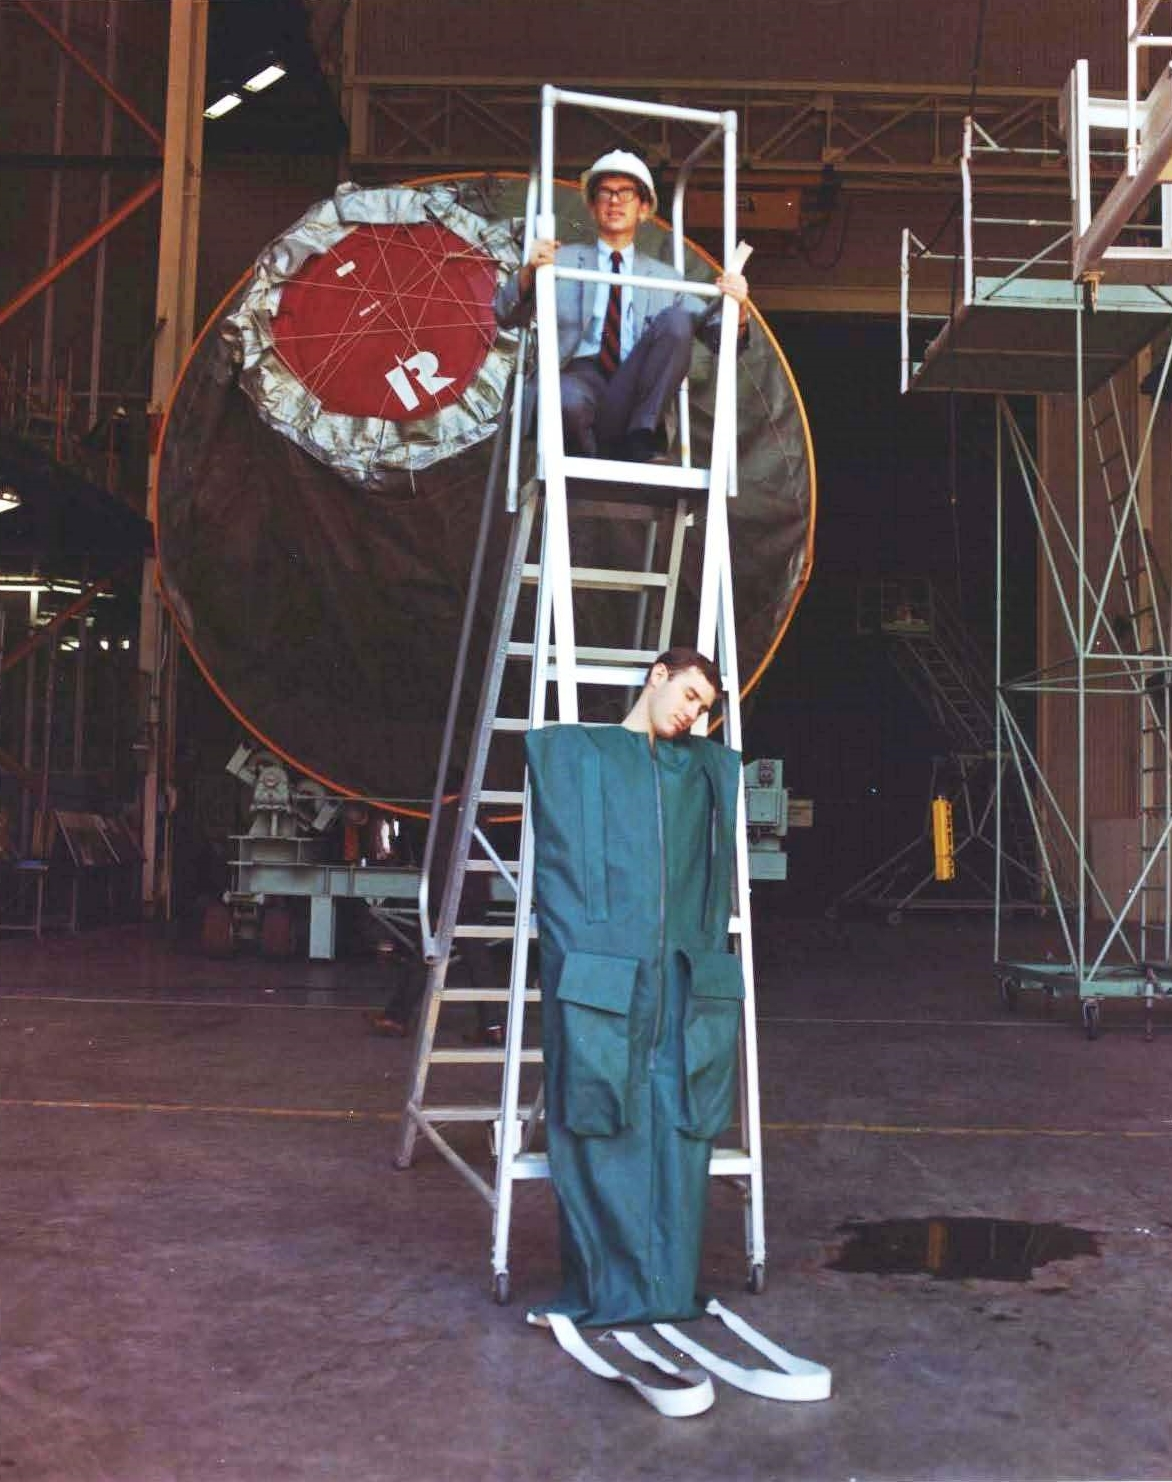 McDonnell-Douglas engineer modelling the MOL sleeping bag. ( NRO MOL Photograph 43 . Photo credit: McDonnell Douglas and NRO.)